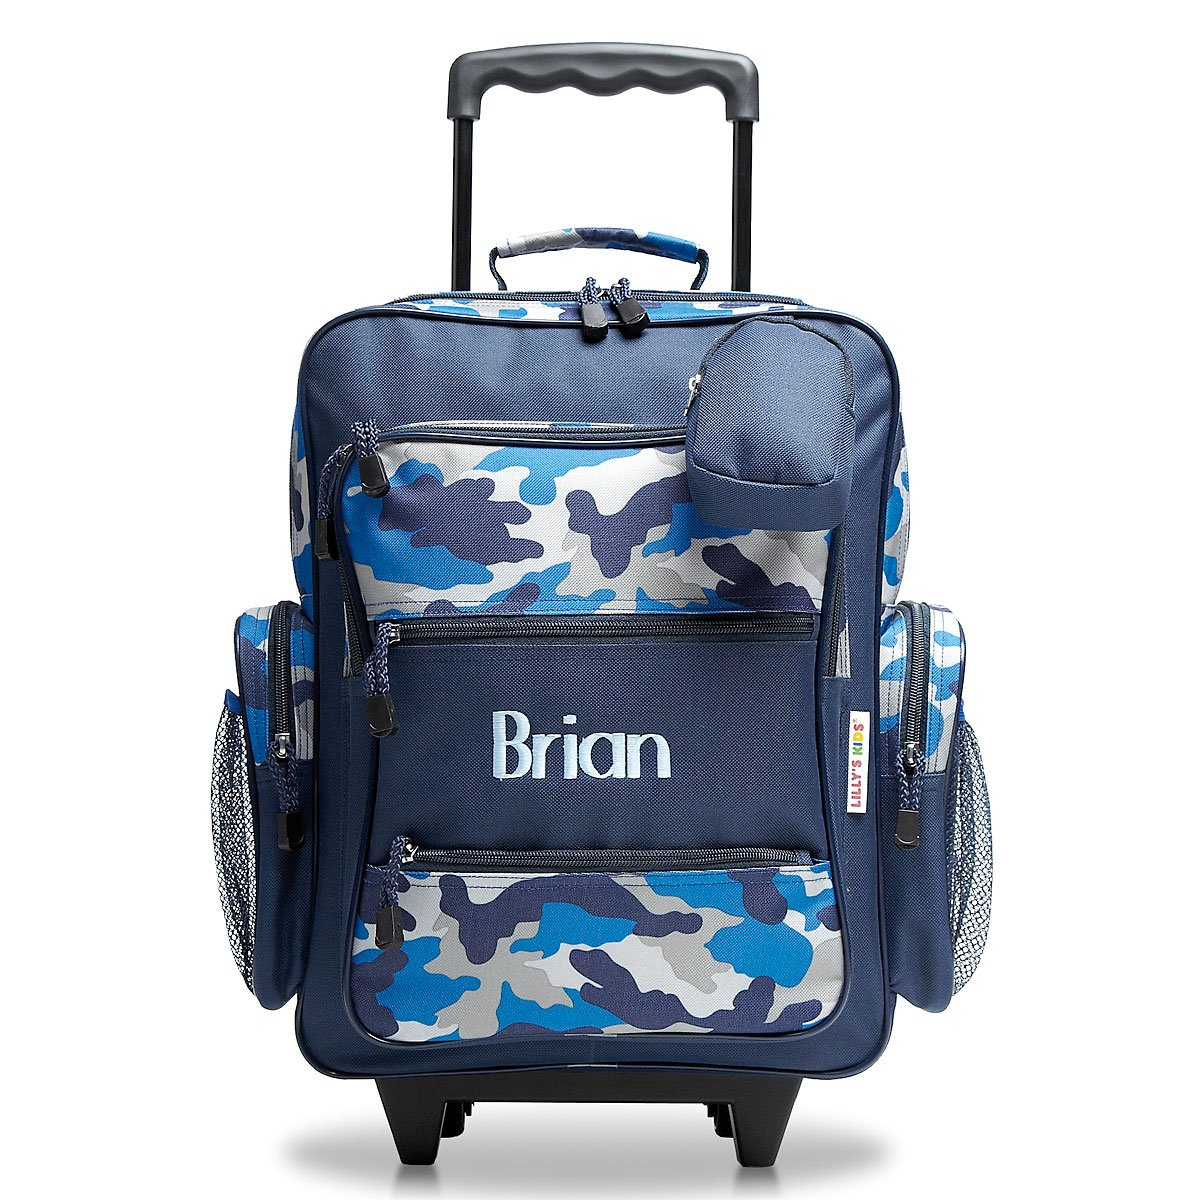 Personalized Rolling Luggage for Kids - Blue Camo Design, 5'' x 12'' x 20''H, By Lillian Vernon